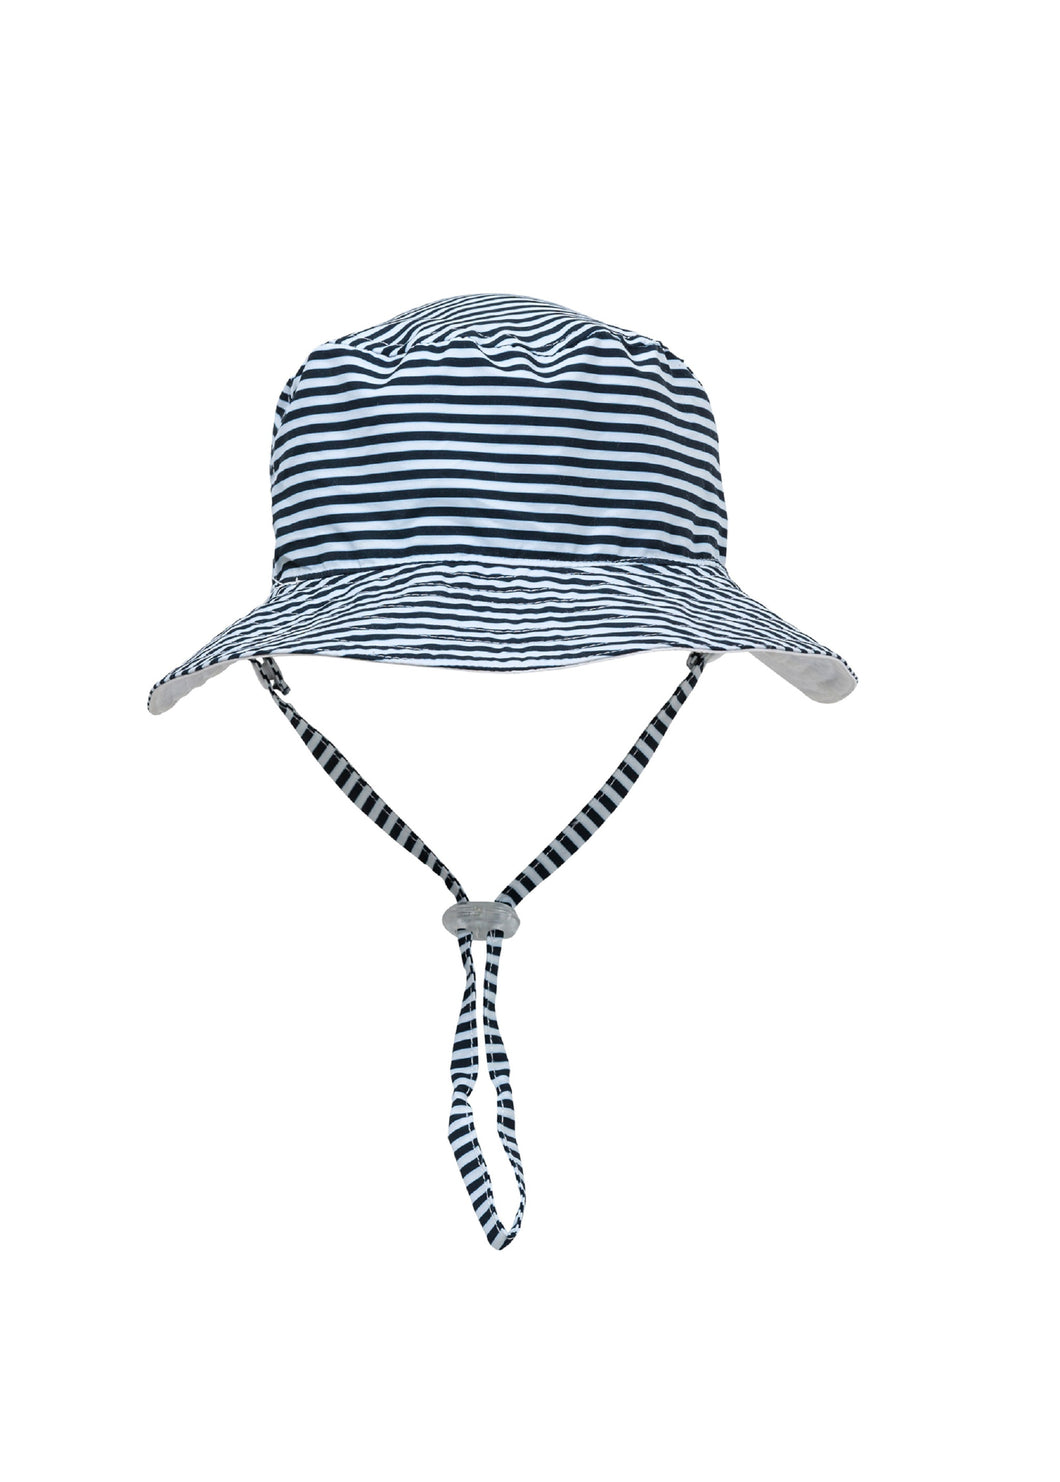 White / Navy Stripe Reversible Bucket Hat